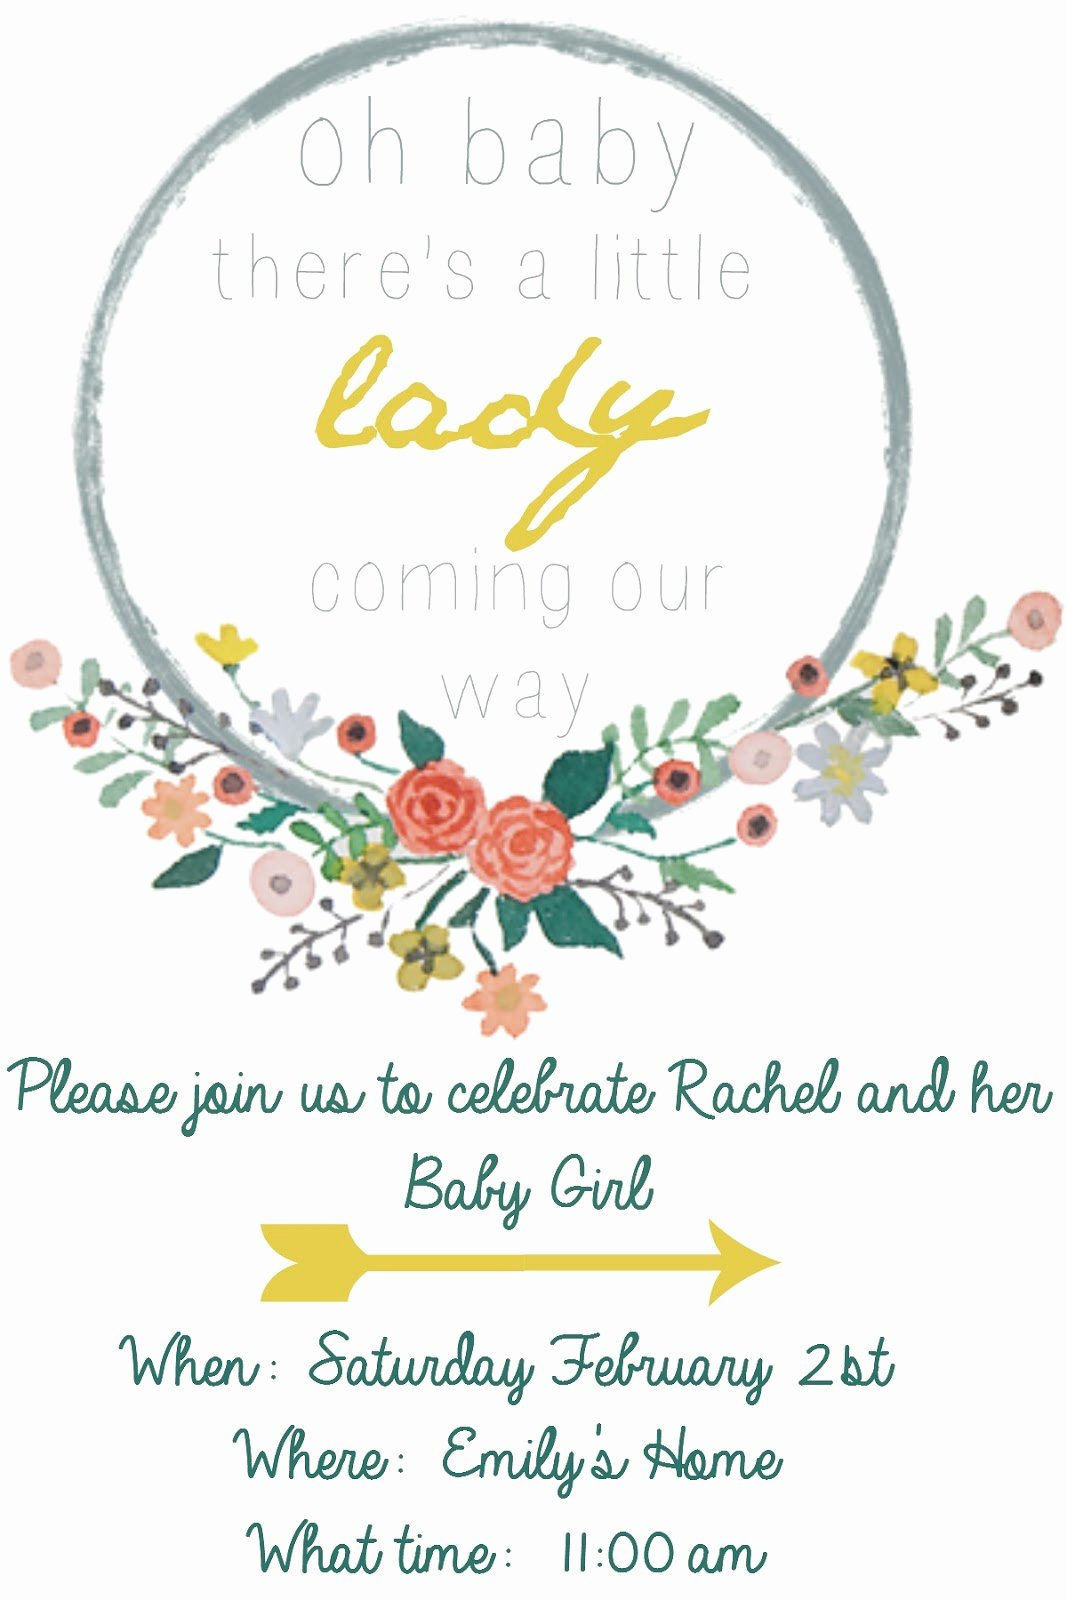 Baby Girl Invitation Template Luxury Emmy In Her Element Free Baby Shower Invitation Template